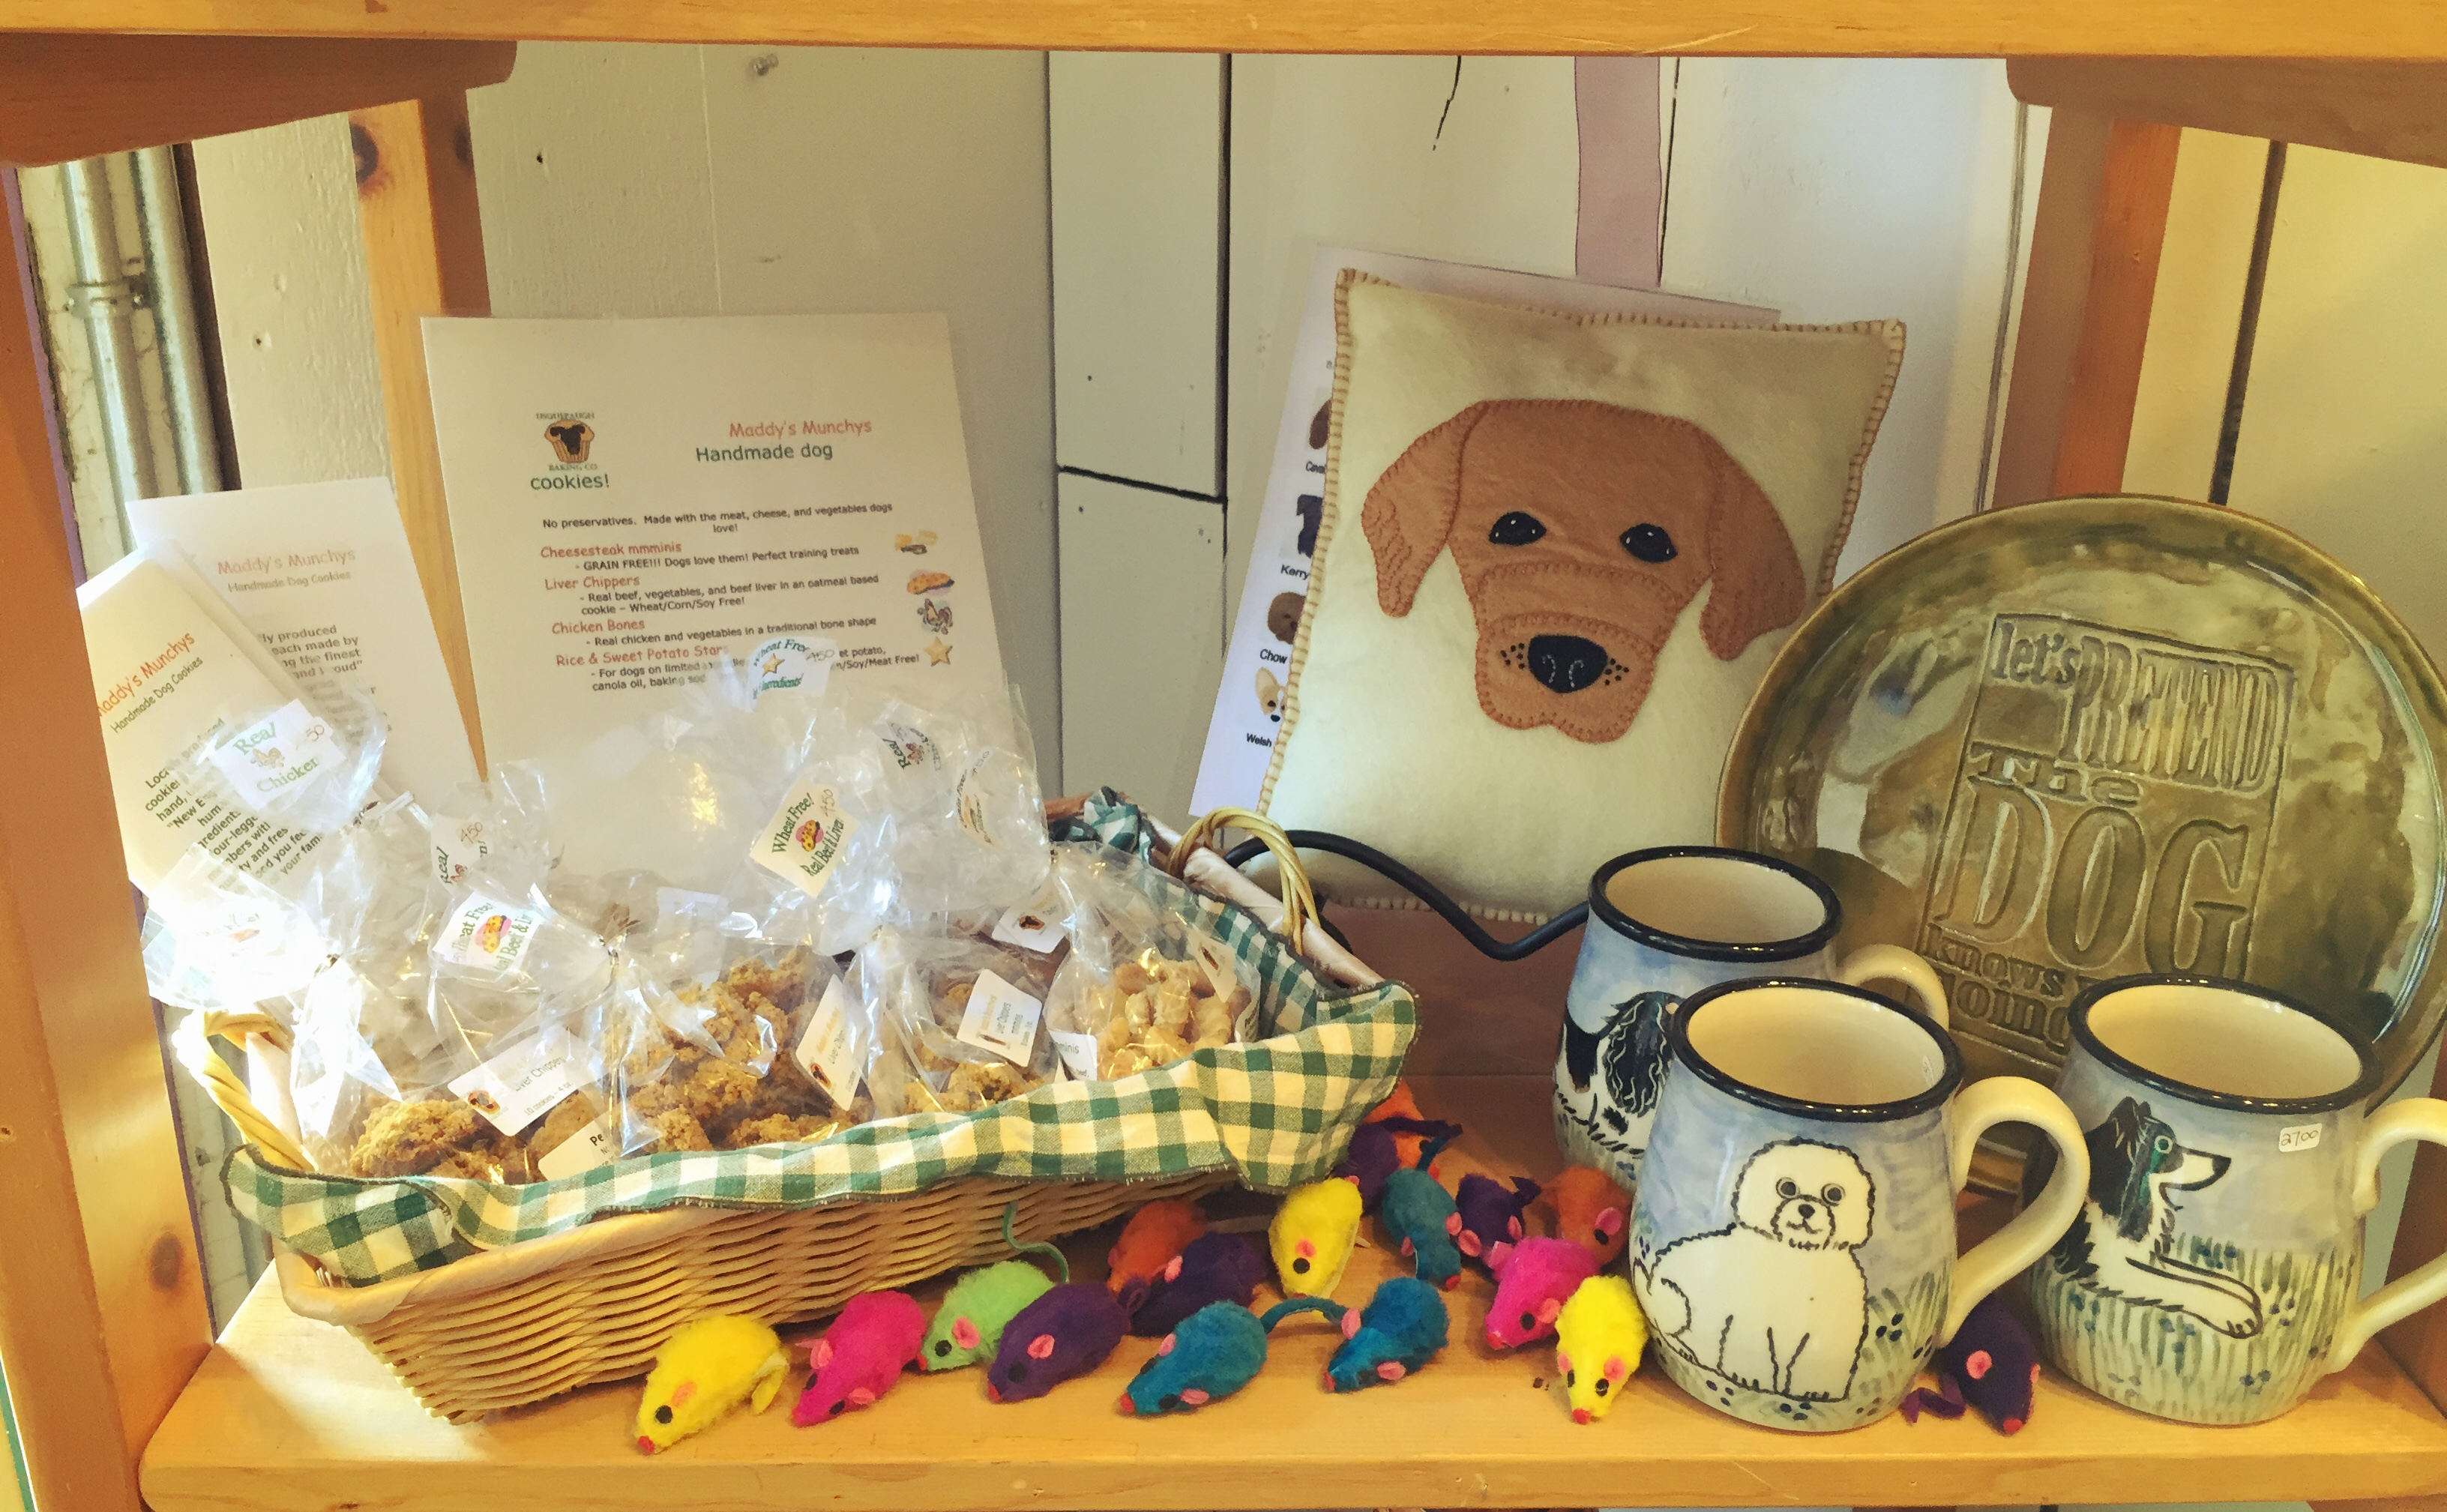 Locally made dog treats!